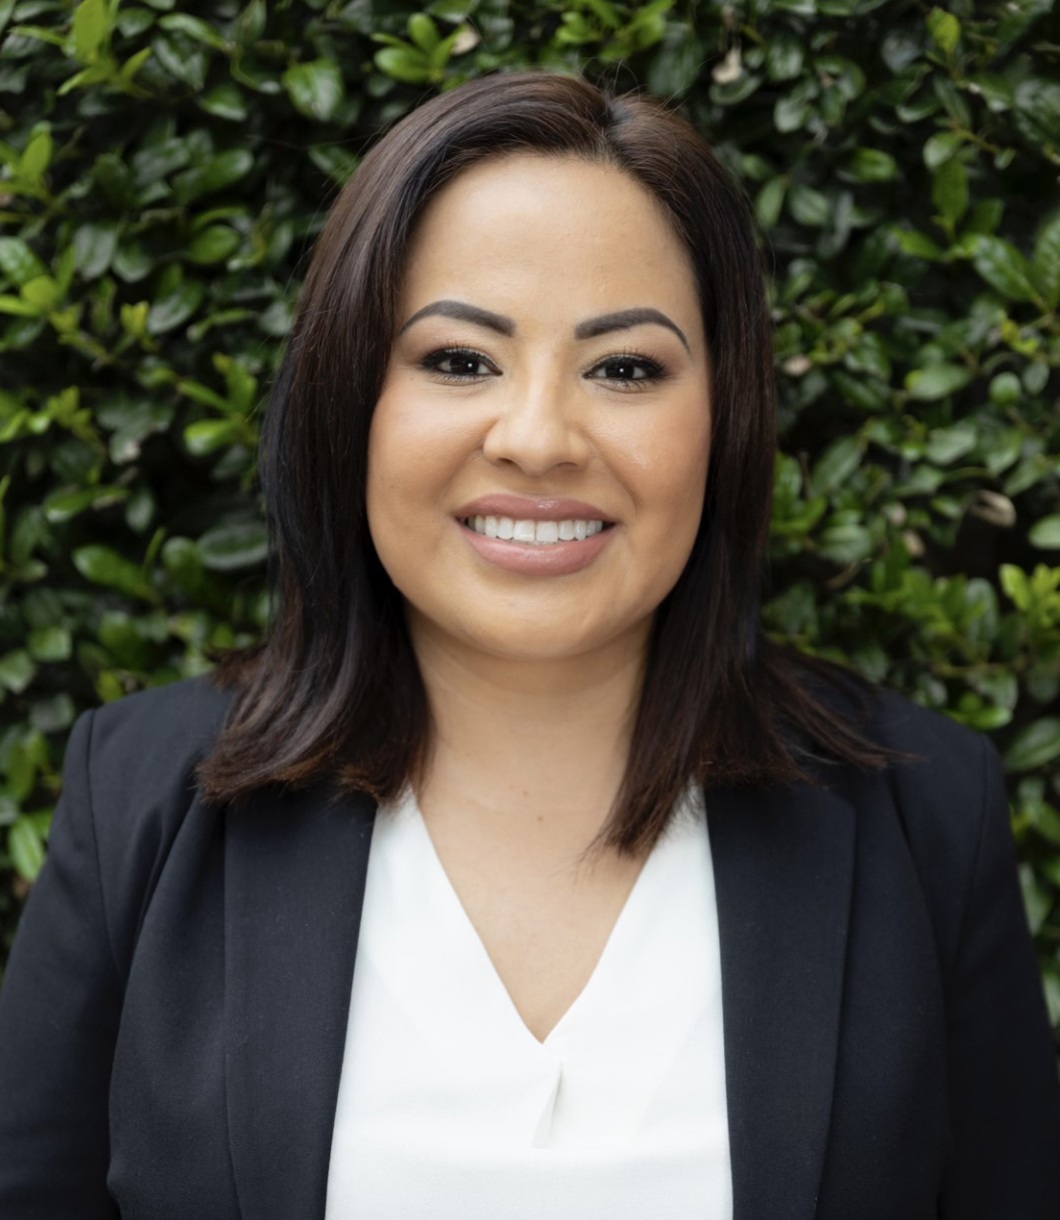 Melissa Rodriguez - Agent at The Reyna Group